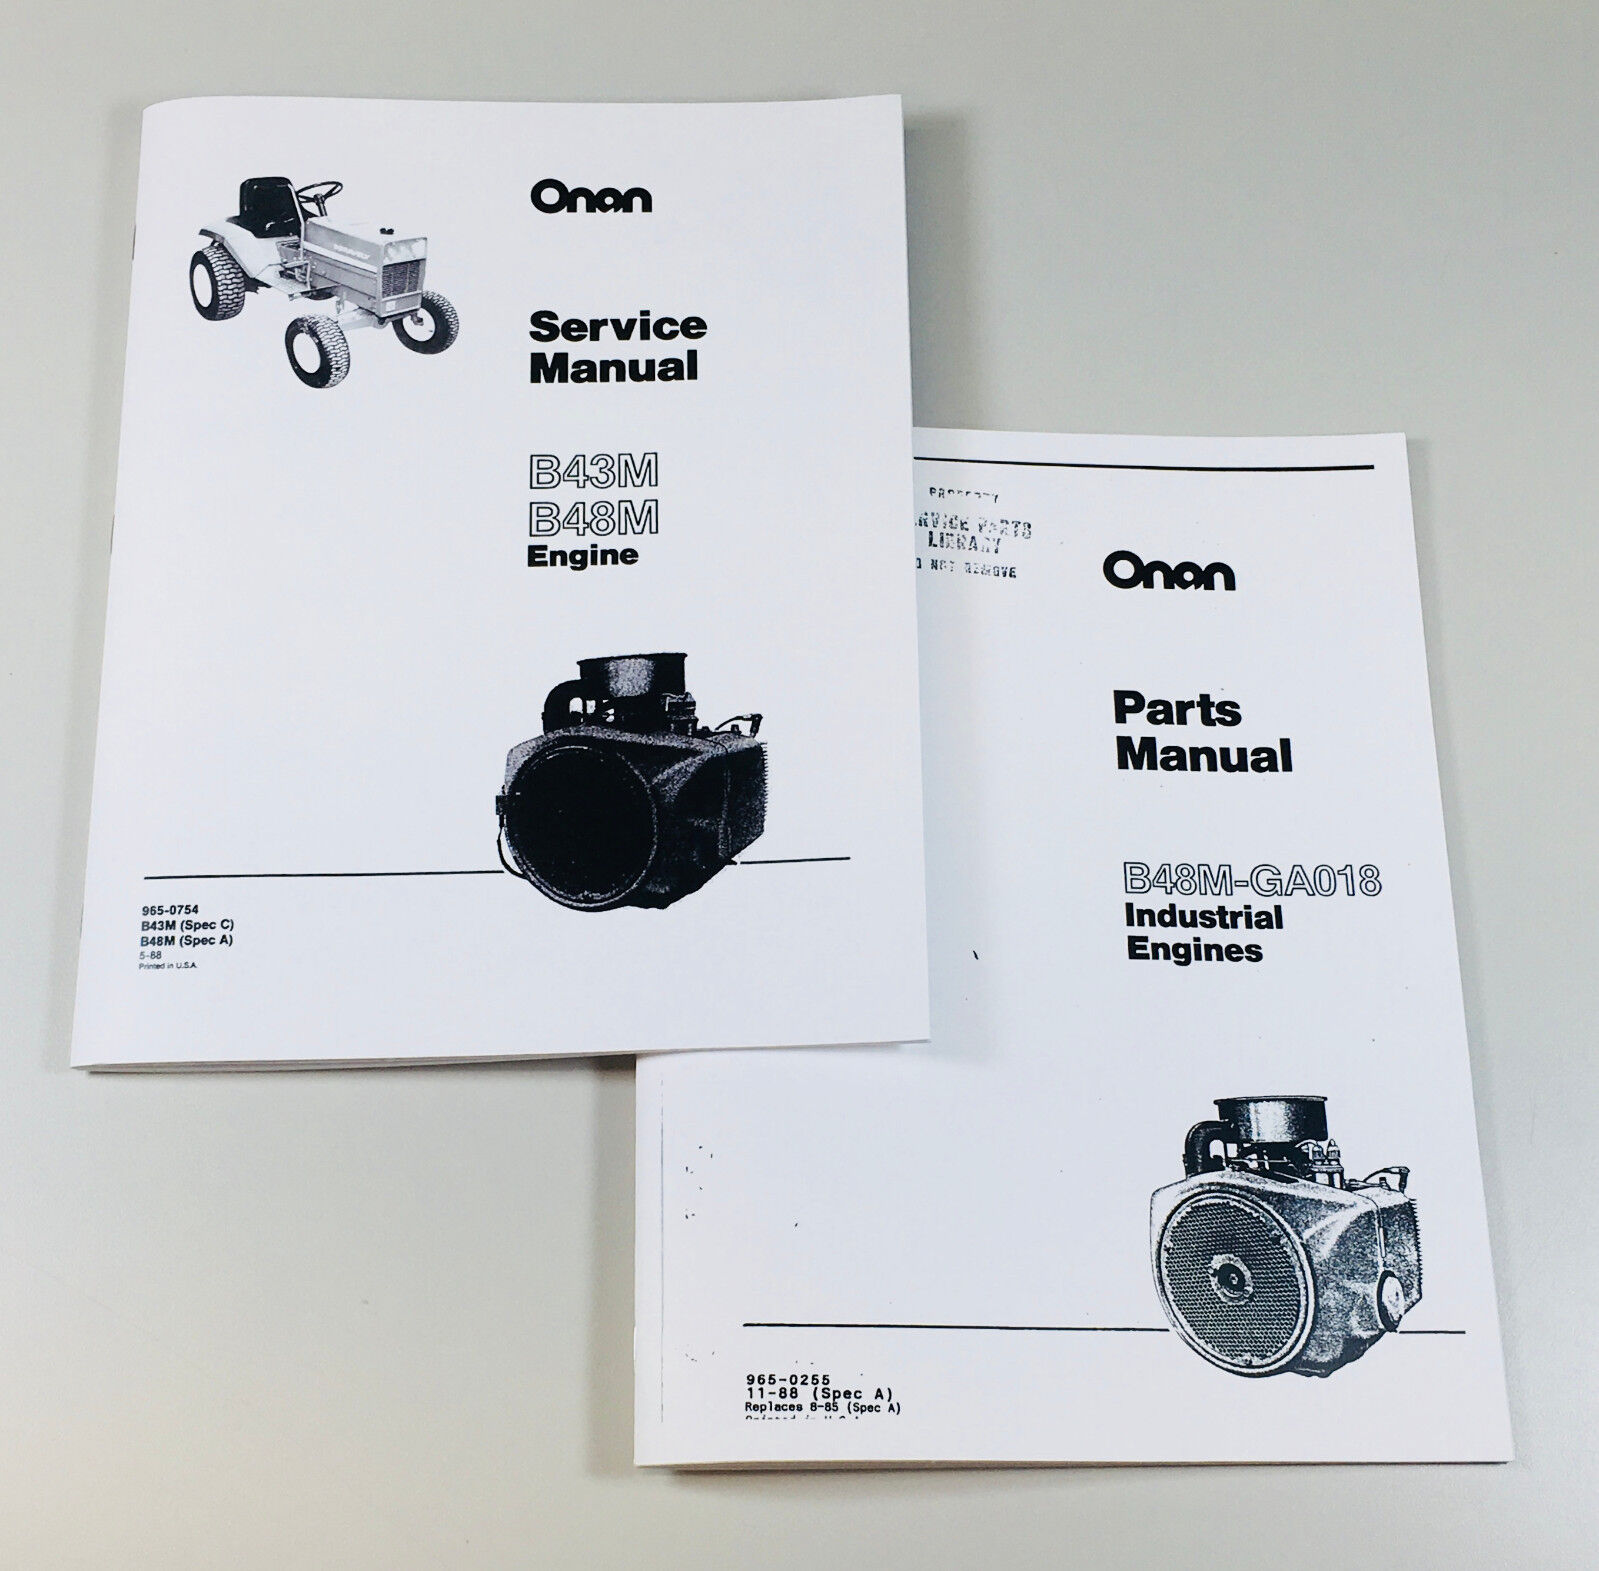 Key Switch Wiring Diagram For Onan B48m Electrical Diagrams Case 448 Garden Tractor 18hp Engine Service Parts Manual